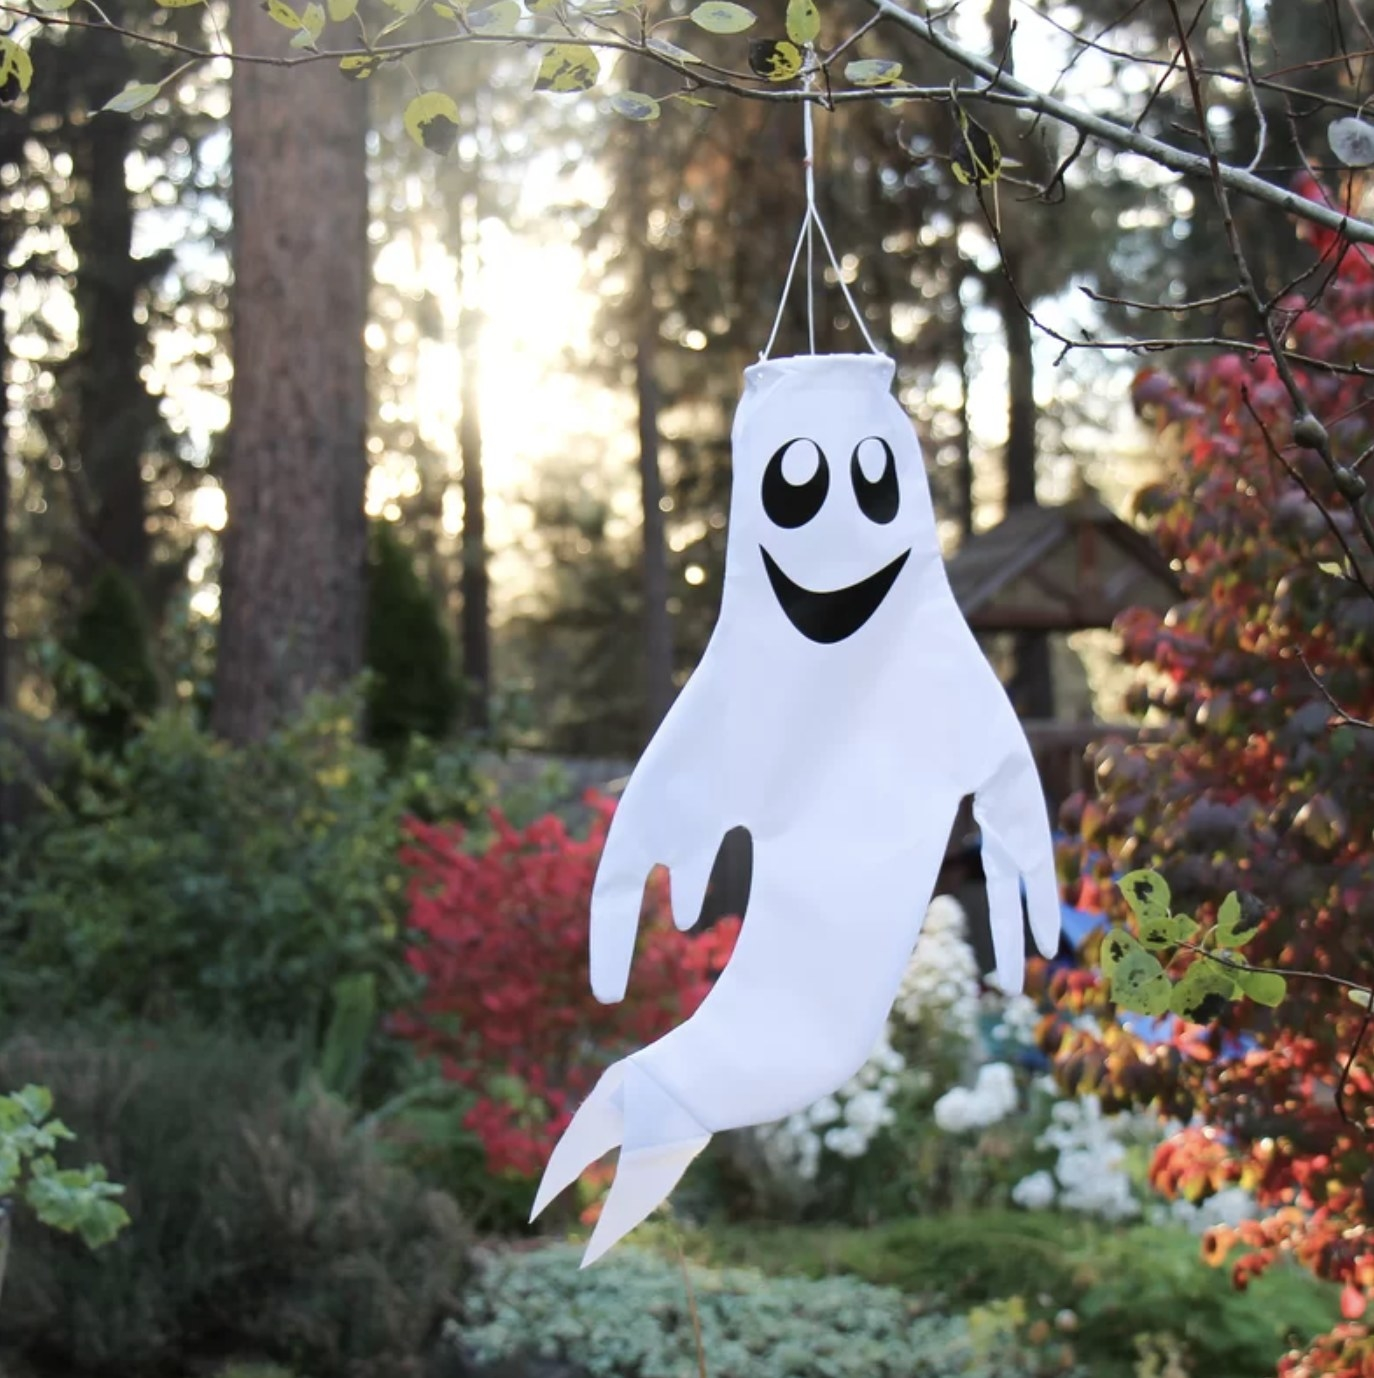 The white windsock ghost floats in the wind while grinning